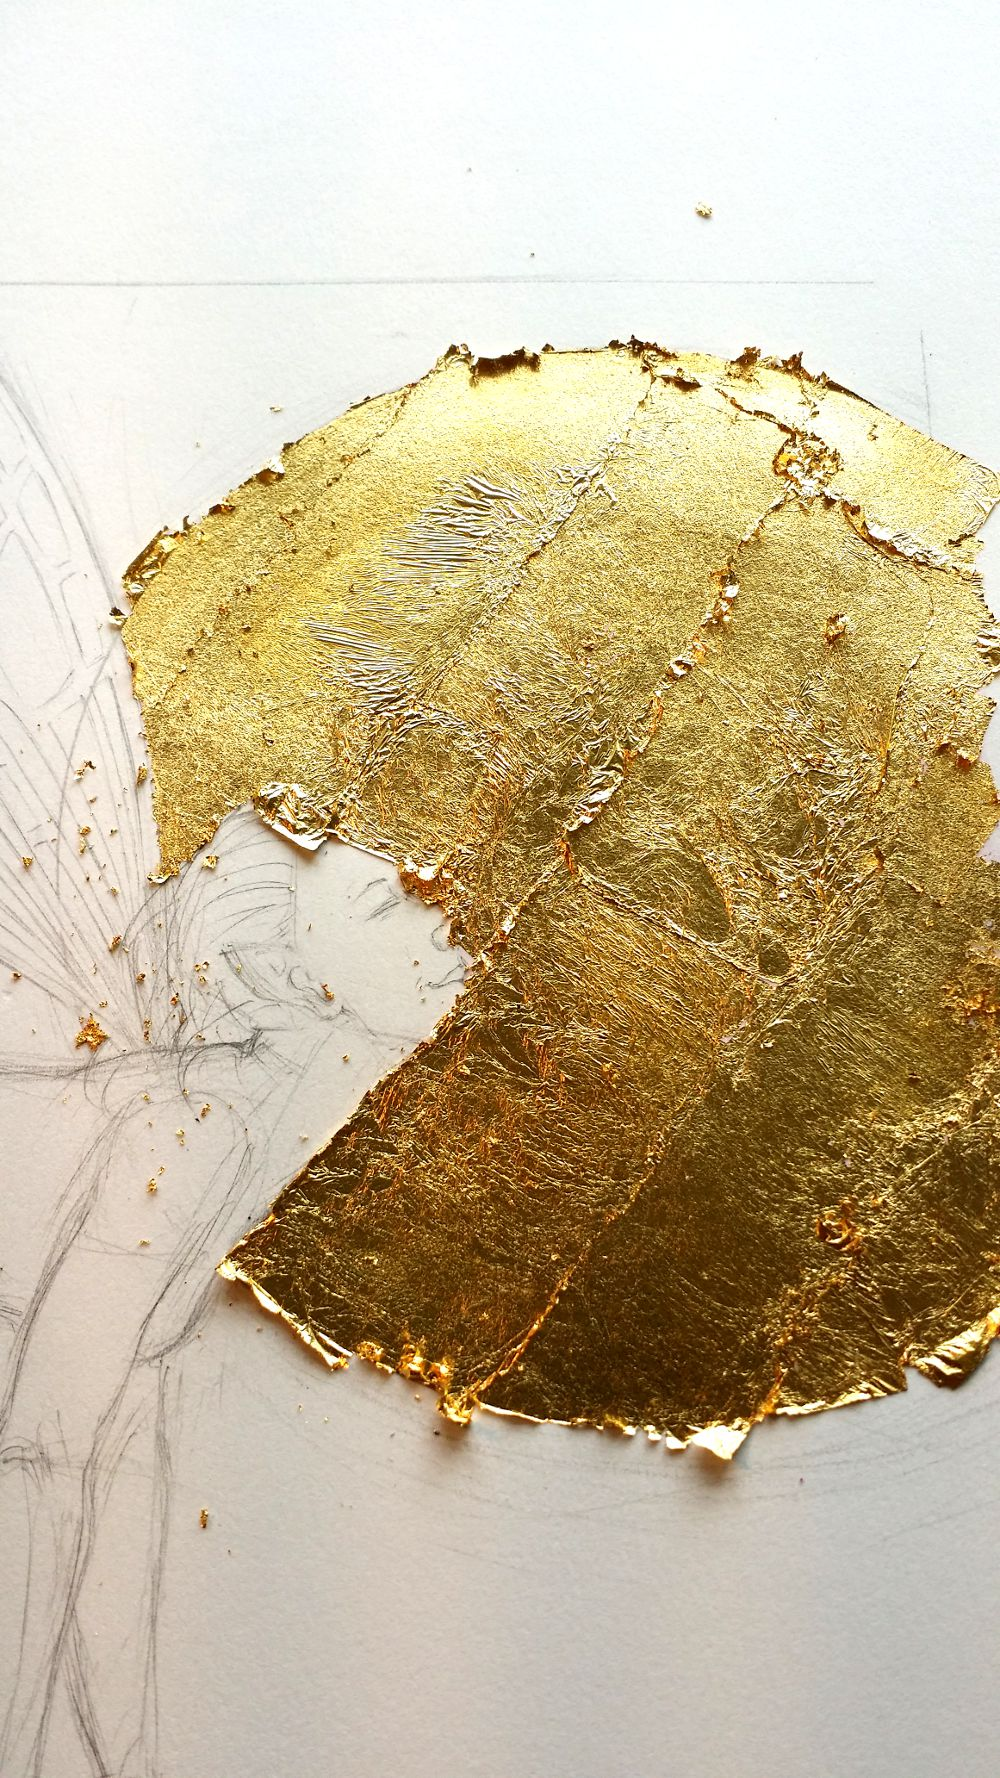 Surface covered with gold leaf